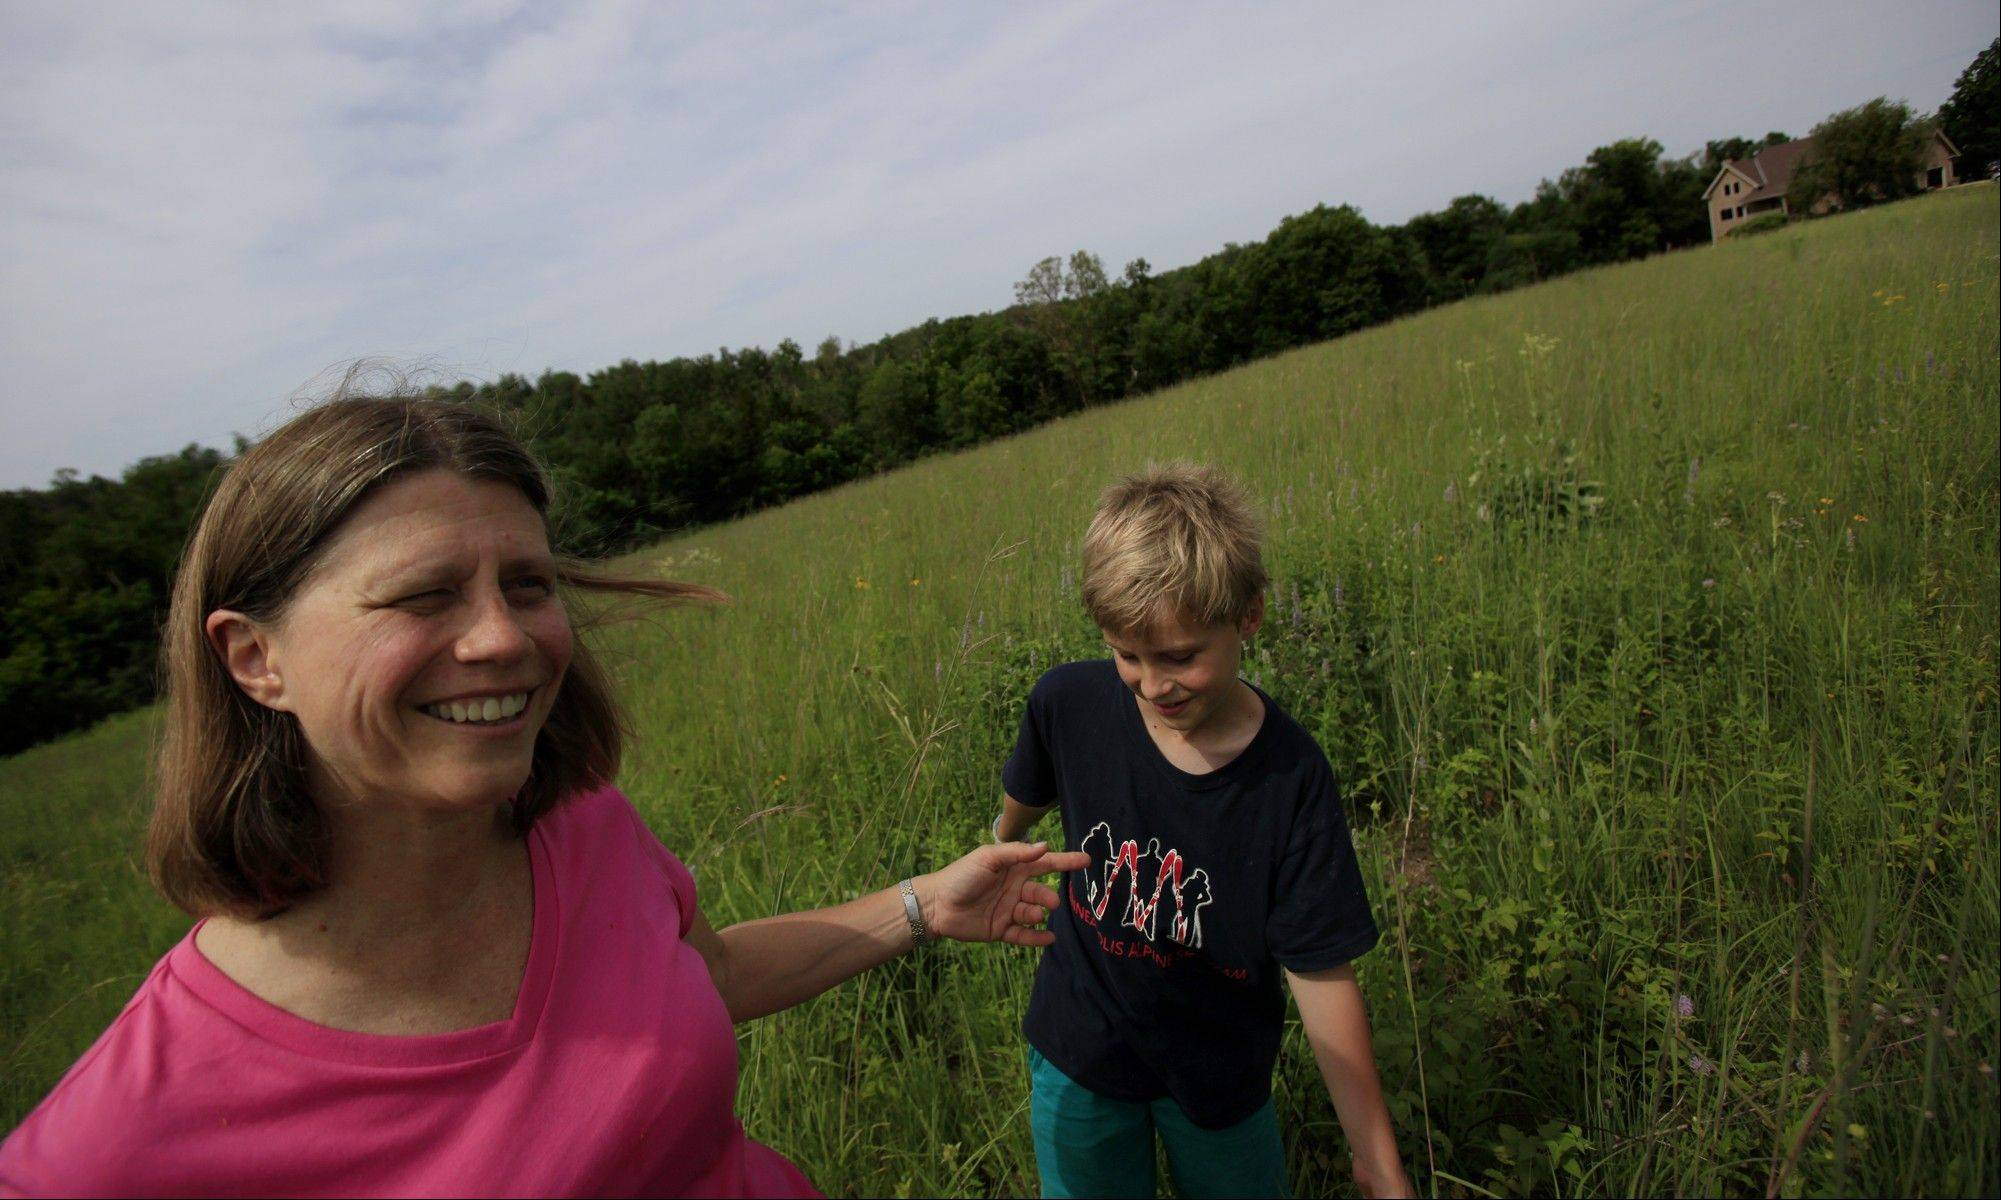 Dr. Elizabeth Reeve and her son Luke enjoy relaxing in their prairie garden.